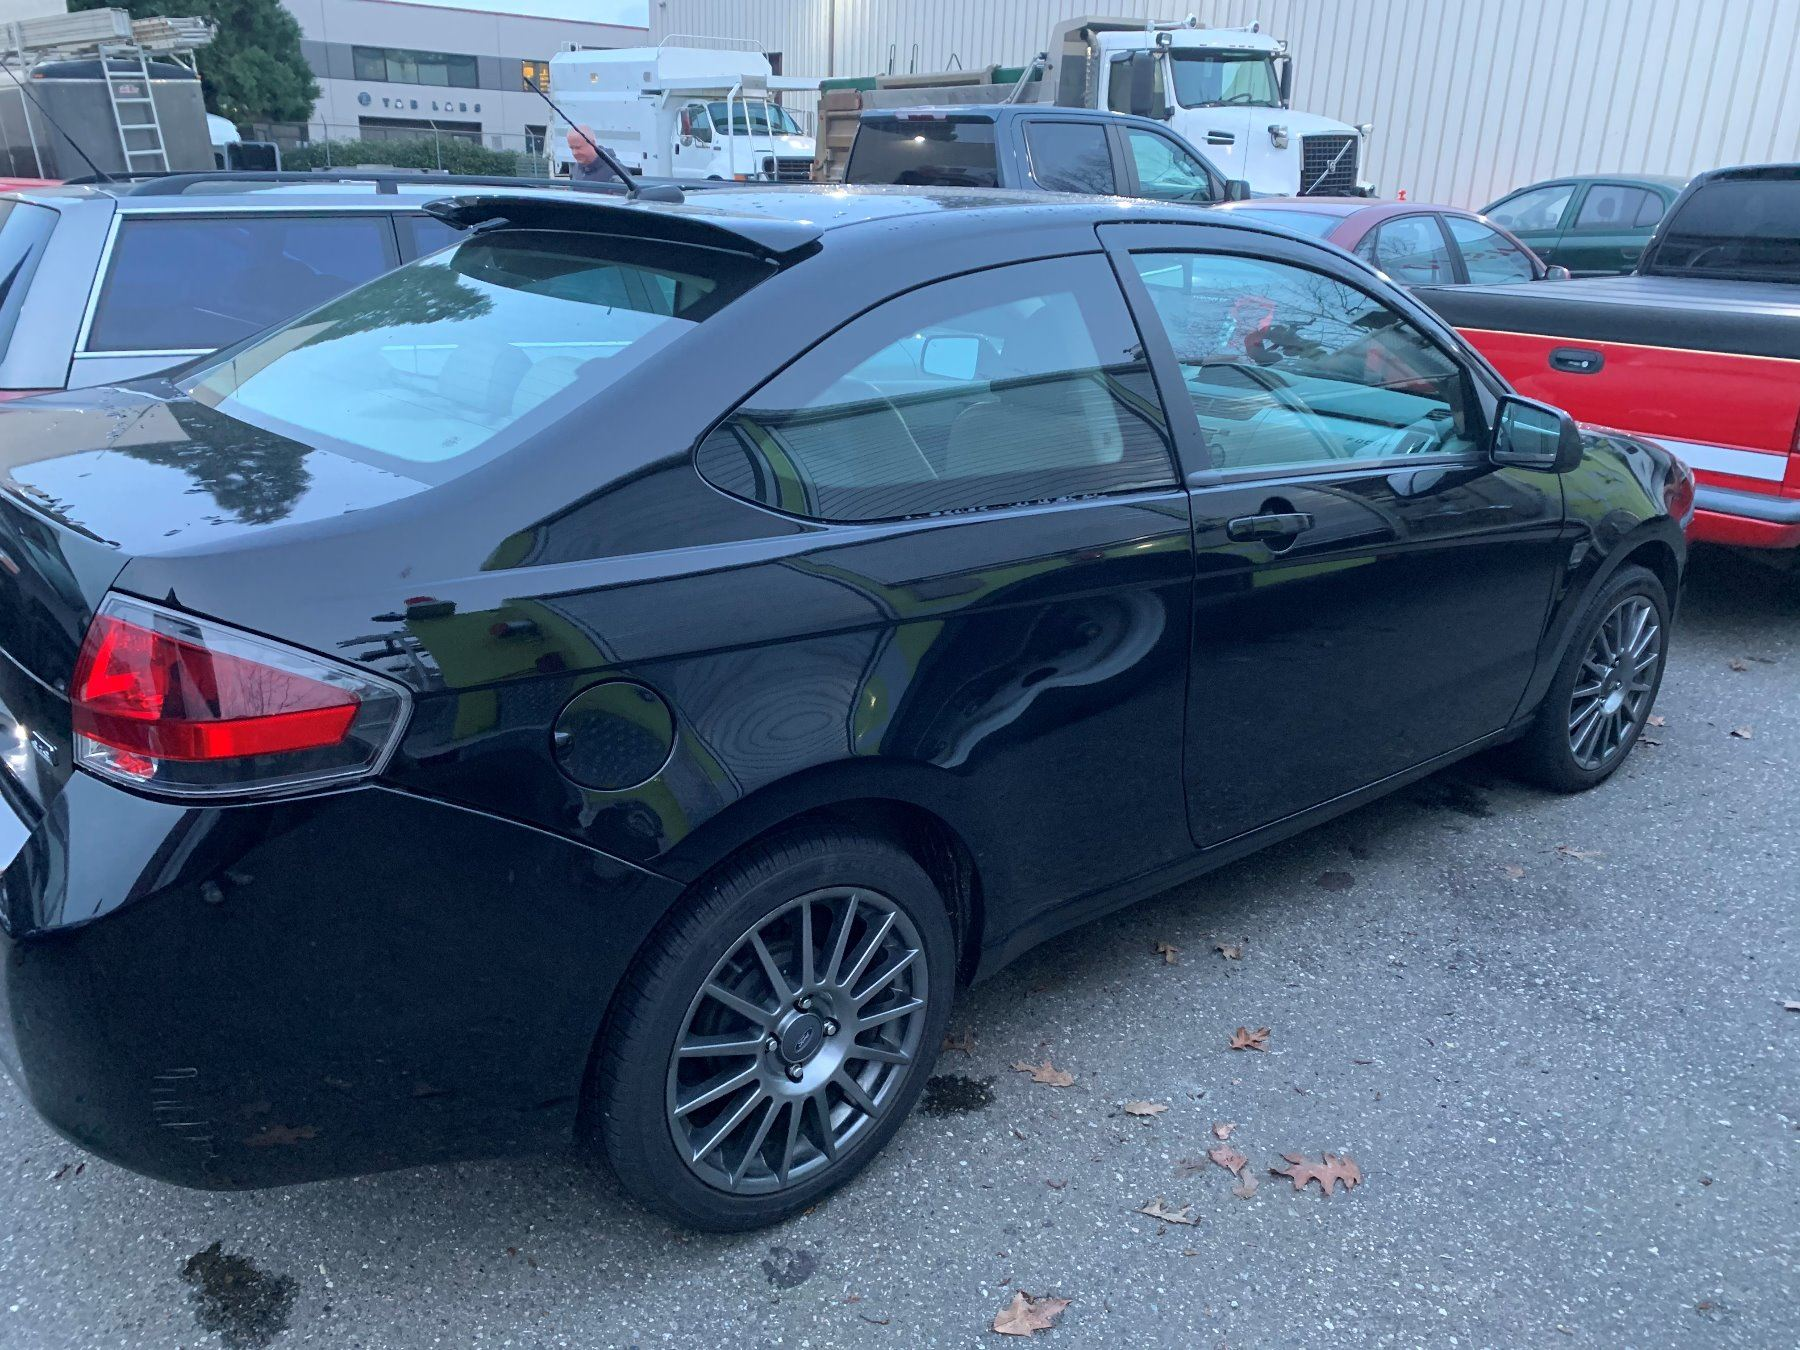 2010 Ford Focus Ses 2dr Coupe Black Vin 1fahp3dn4aw172879